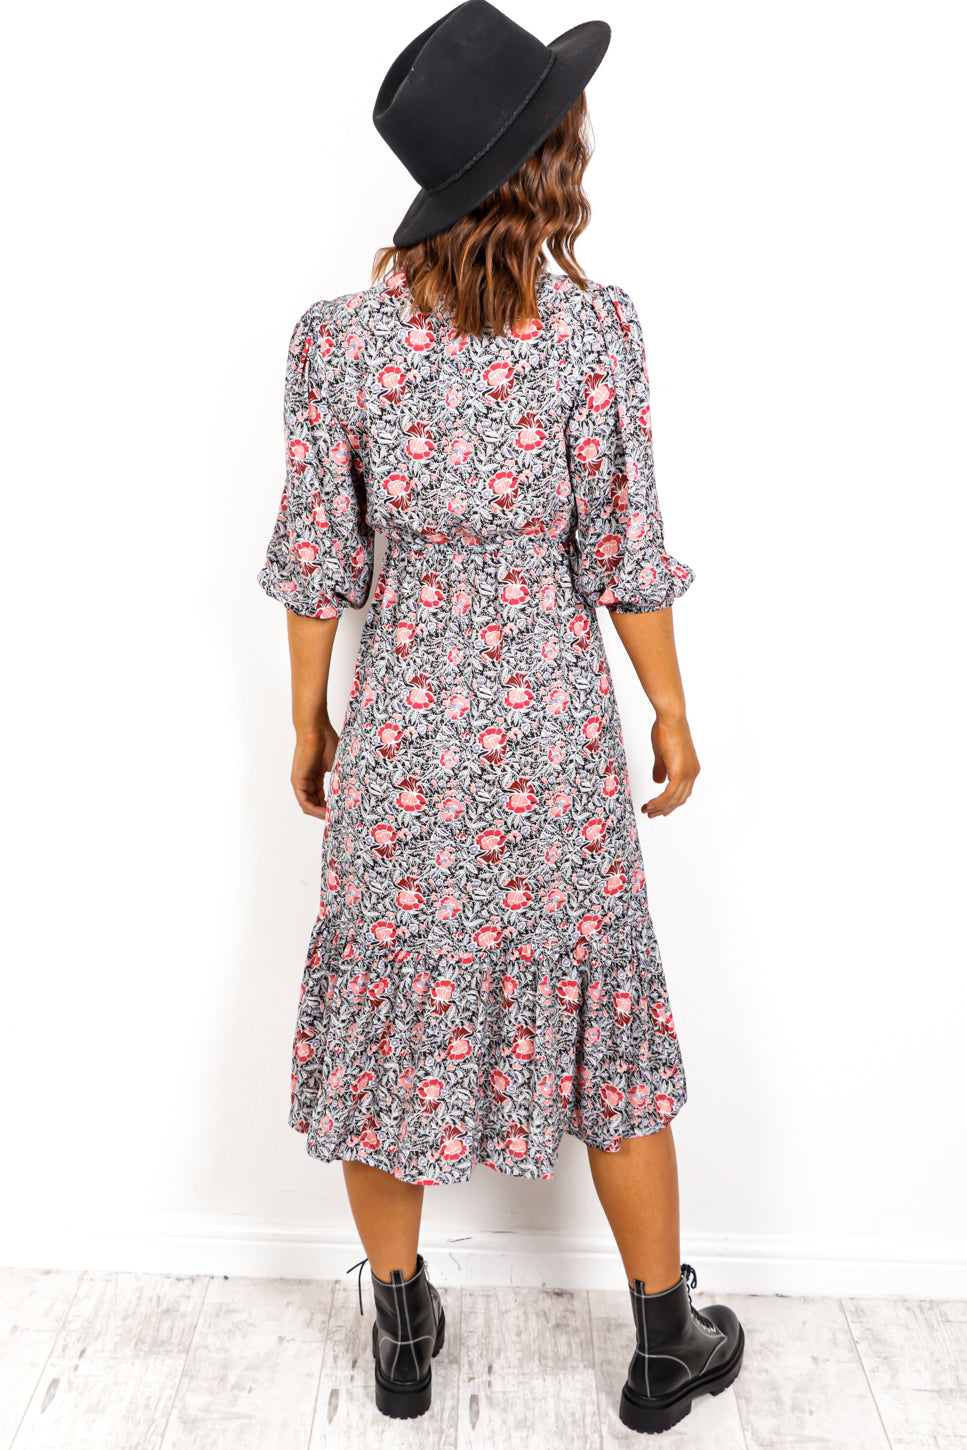 Rose Matter - Black Pink Floral Print Midi Dress